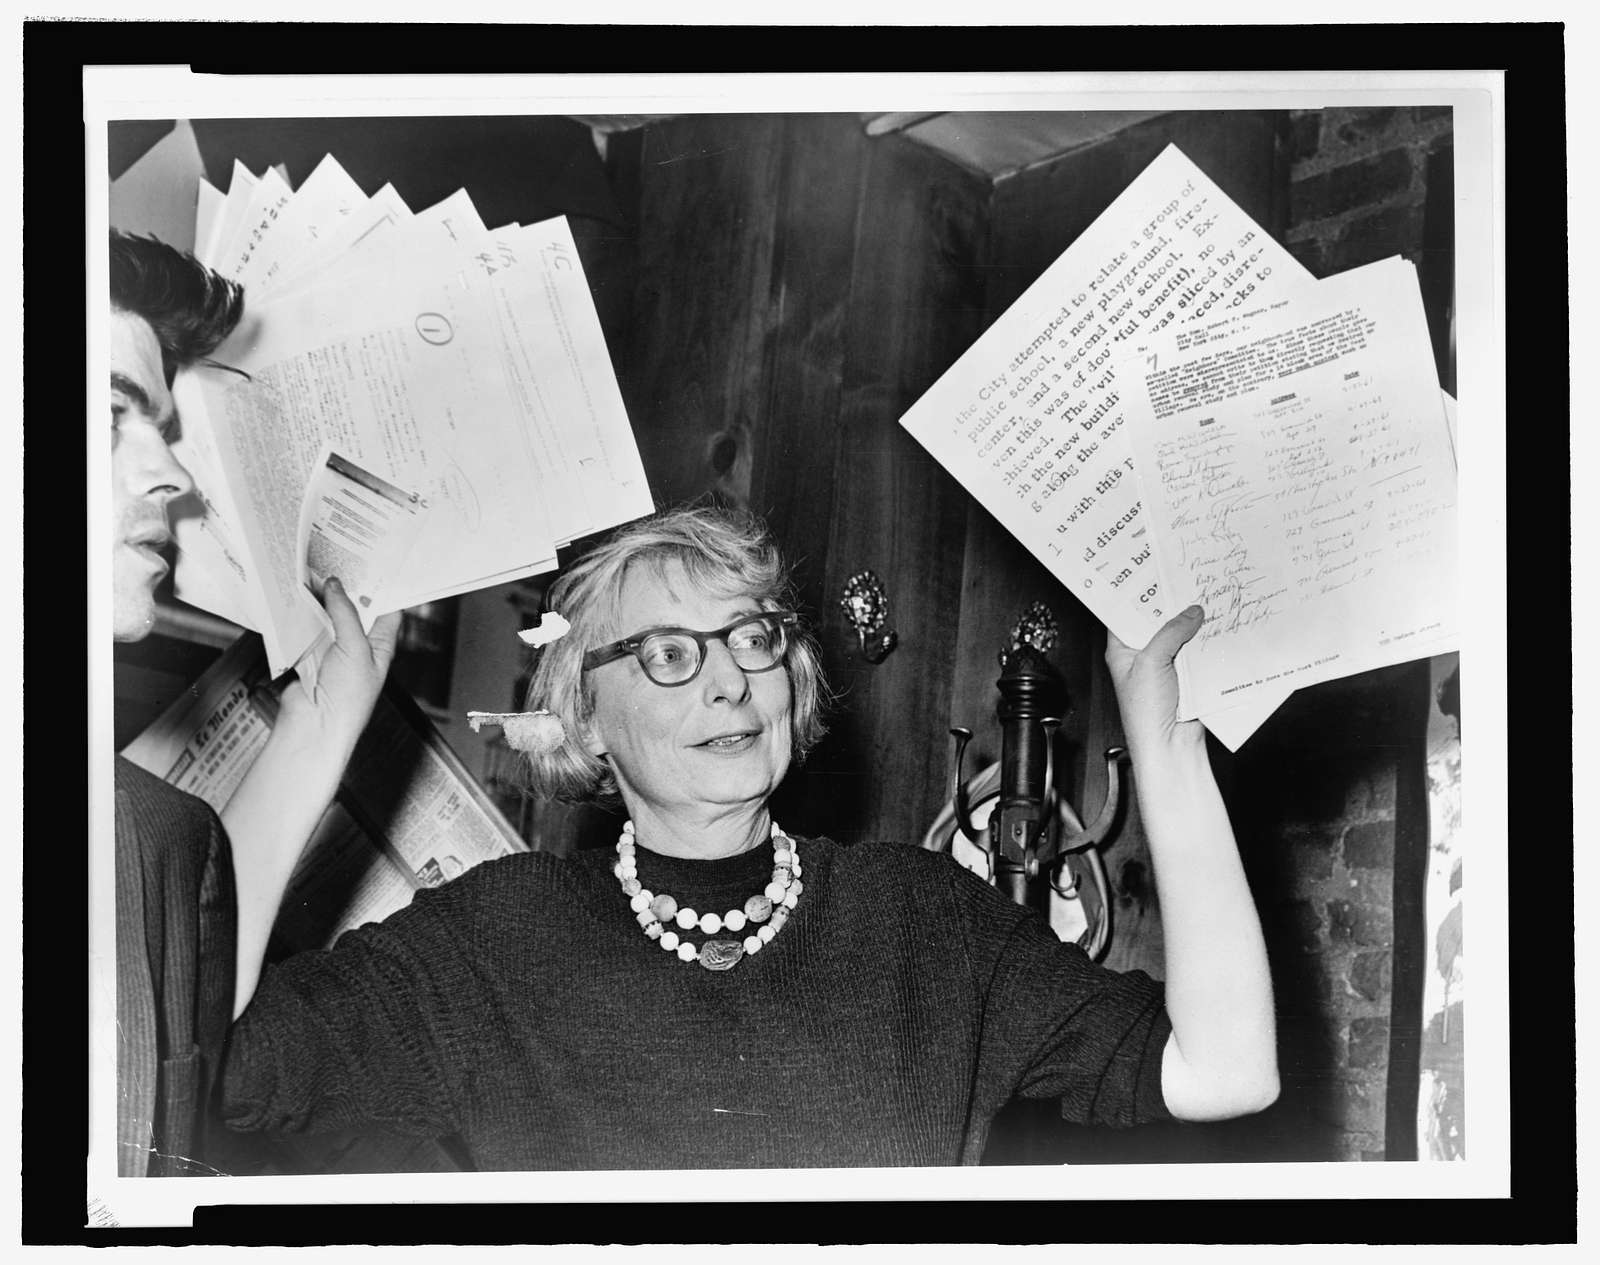 Mrs. Jane Jacobs, chairman of the Comm. to save the West Village holds up documentary evidence at press conference at Lions Head Restaurant at Hudson & Charles Sts / World Telegram & Sun photo by Phil Stanziola.